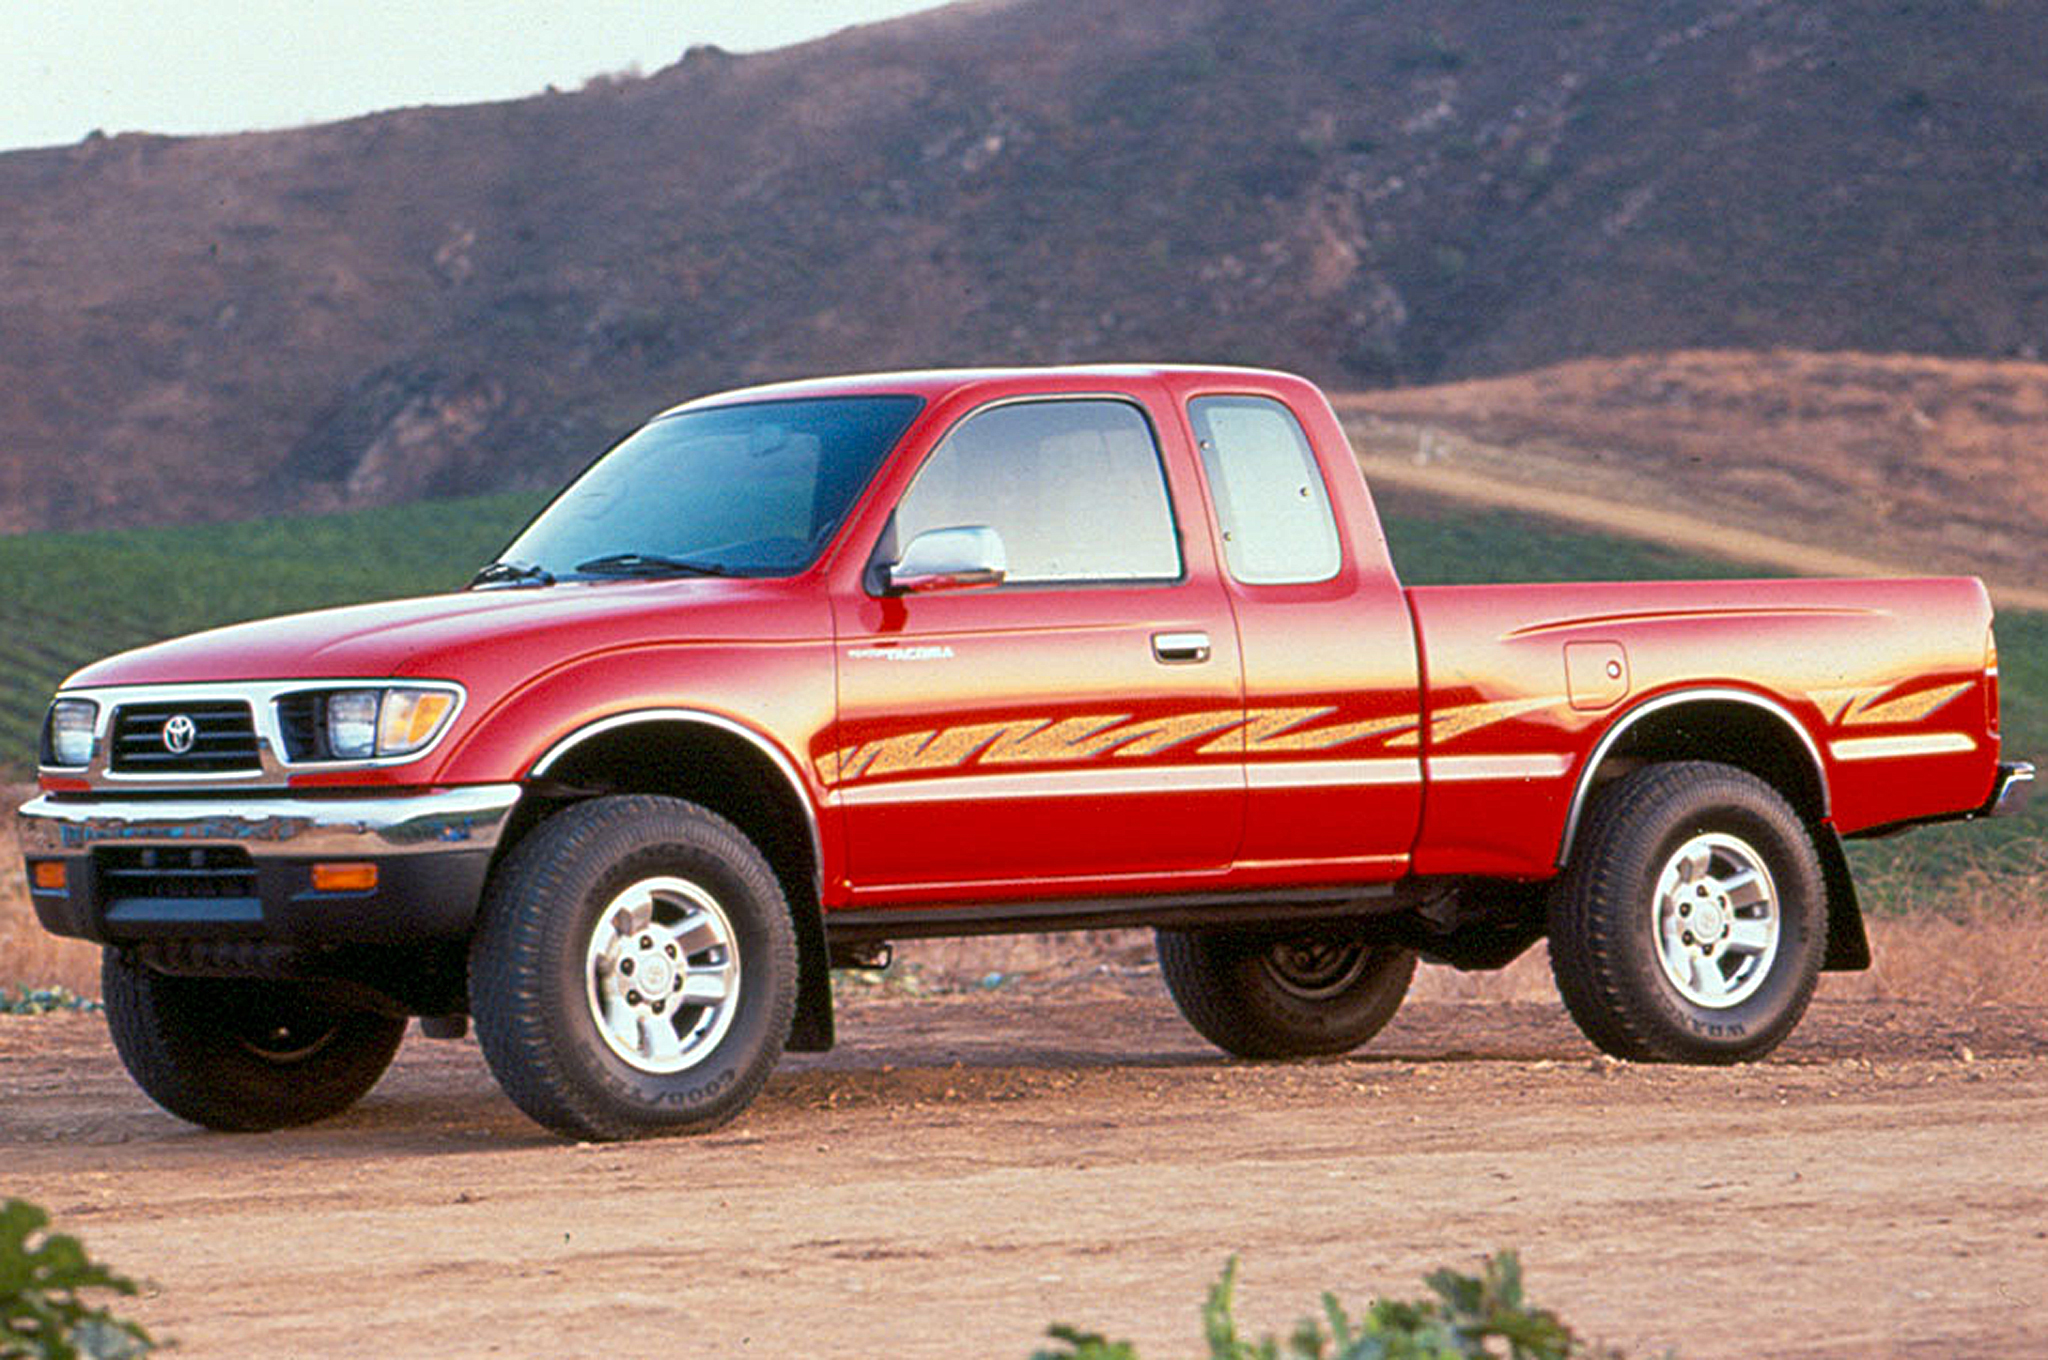 20 Years of the Toyota Tacoma and Beyond: A Look Through the Years